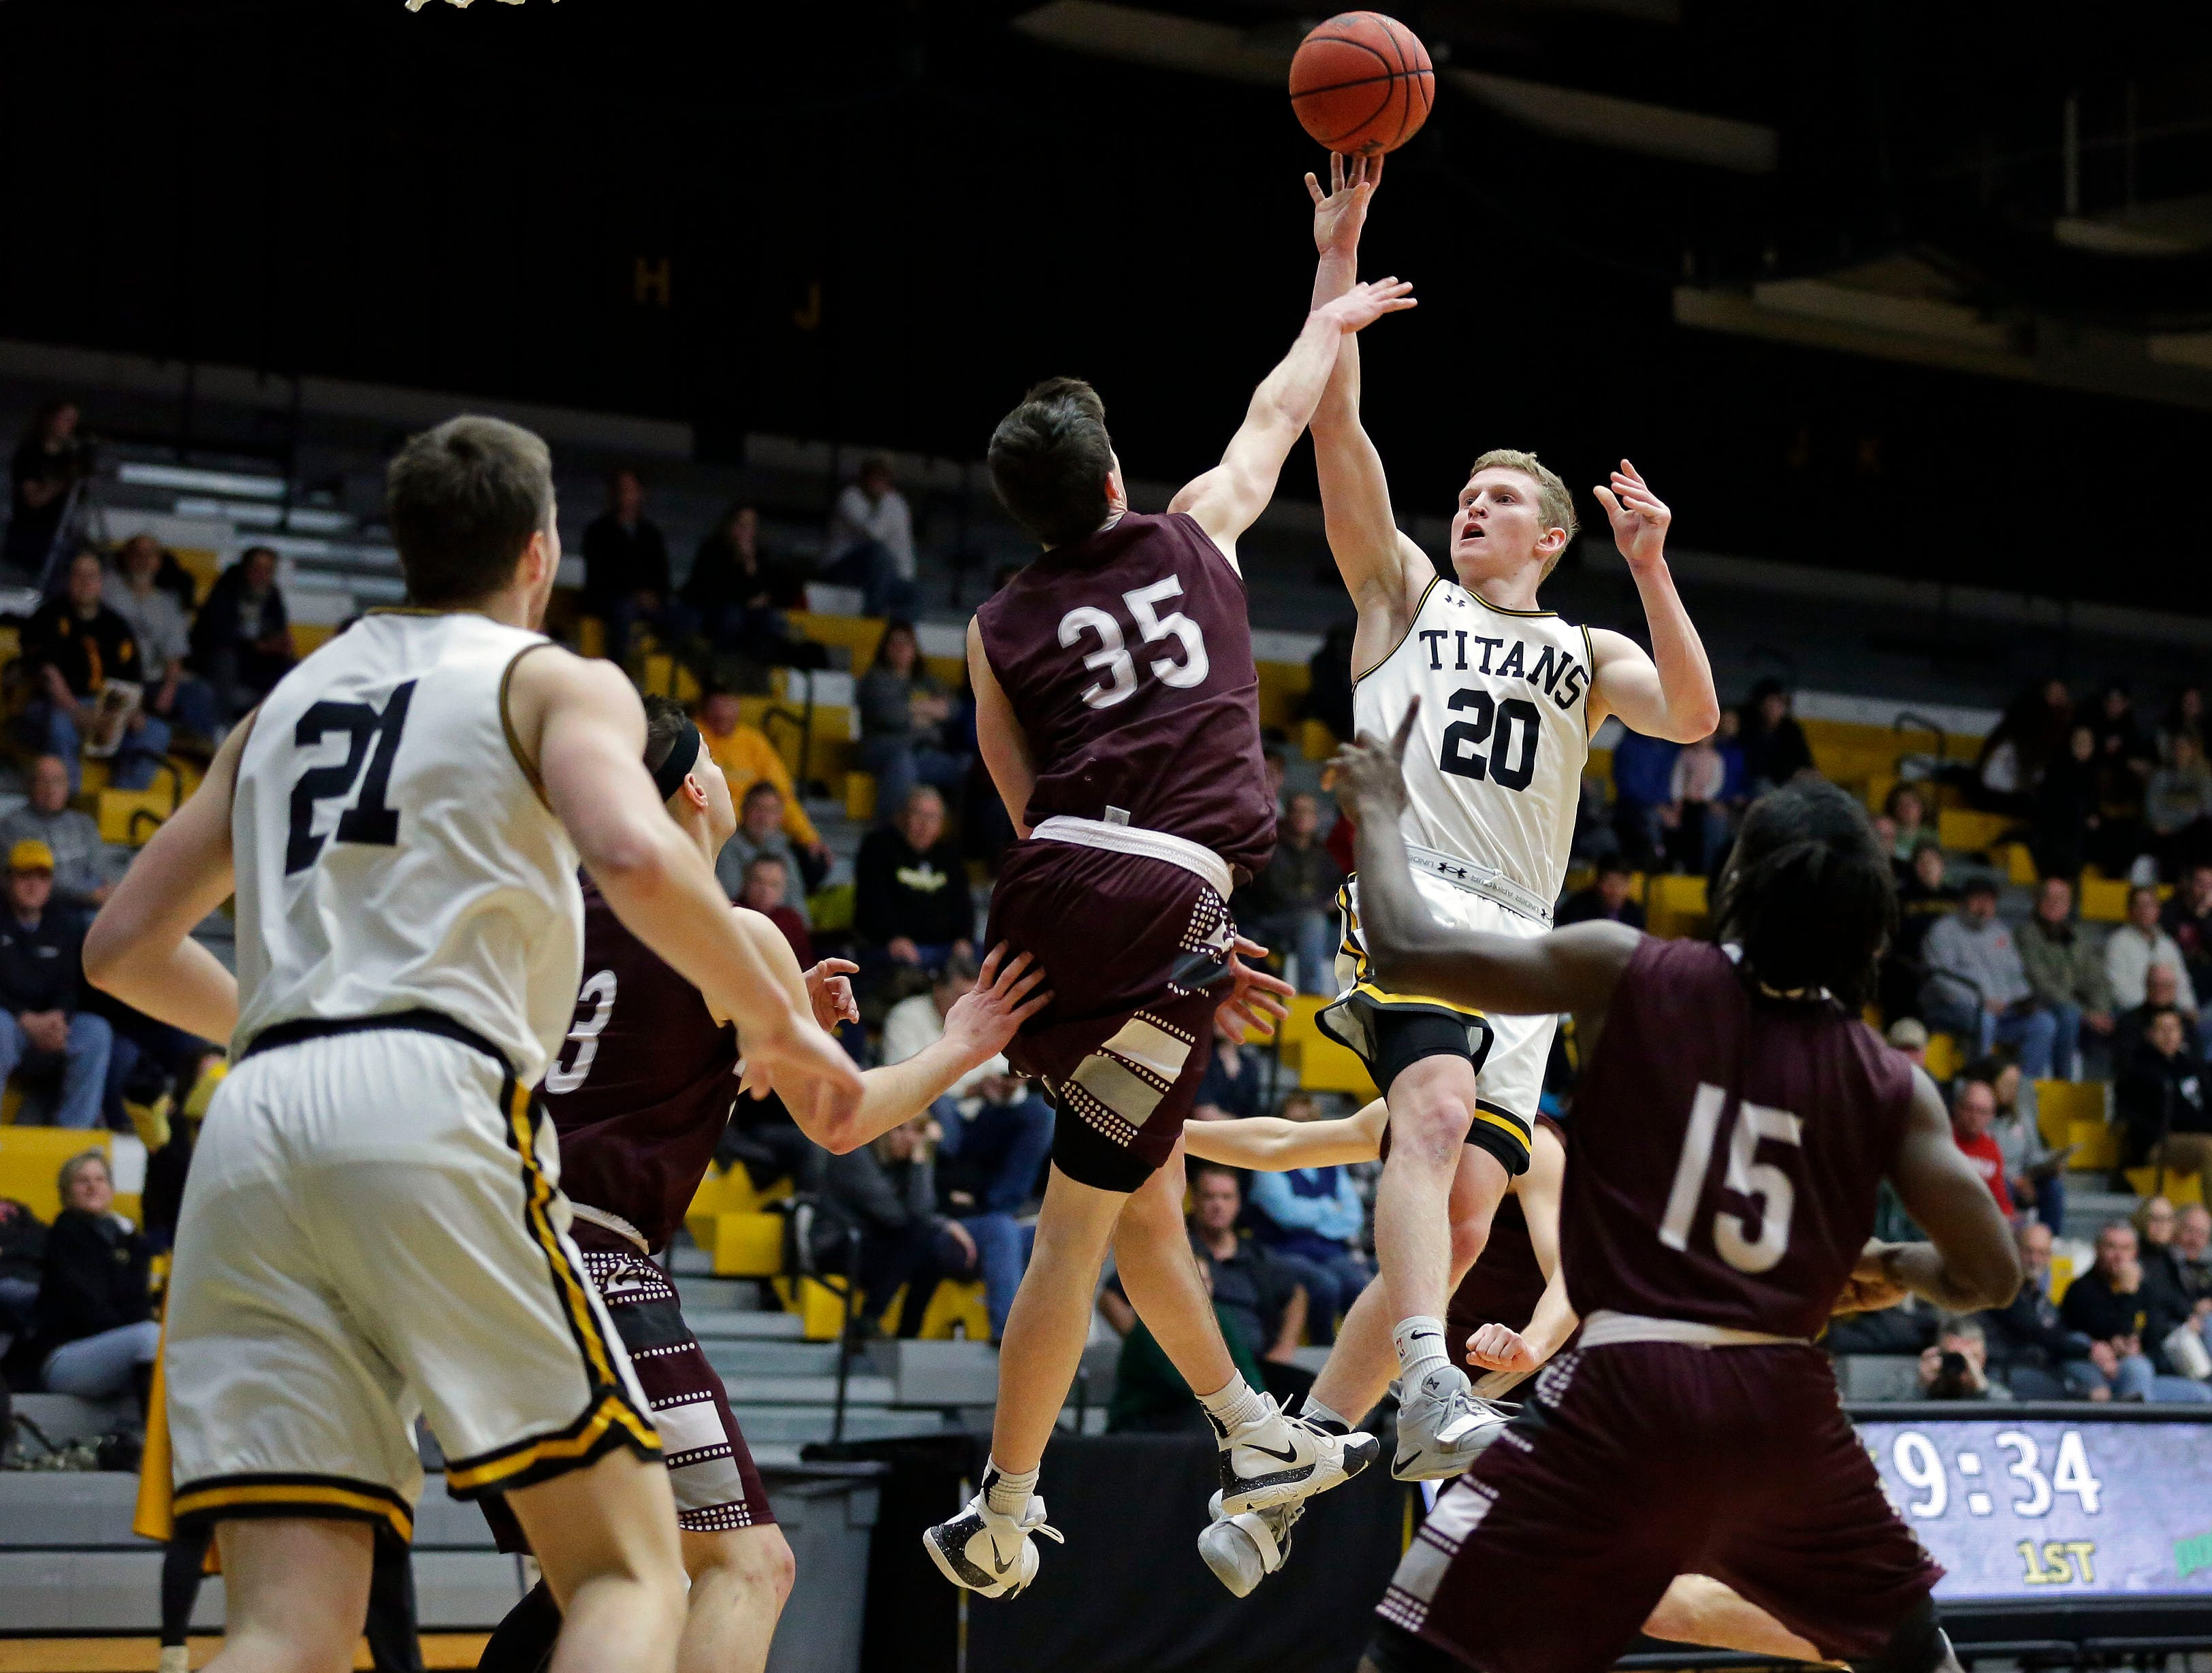 Brendon Manning of UW-La Crosse tries to defend a shot by Connor Duax of UW-Oshkosh in Wisconsin Intercollegiate Athletic Conference basketball Saturday, January 19, 2019, at Kolf Sports Center in Oshkosh, Wis. 